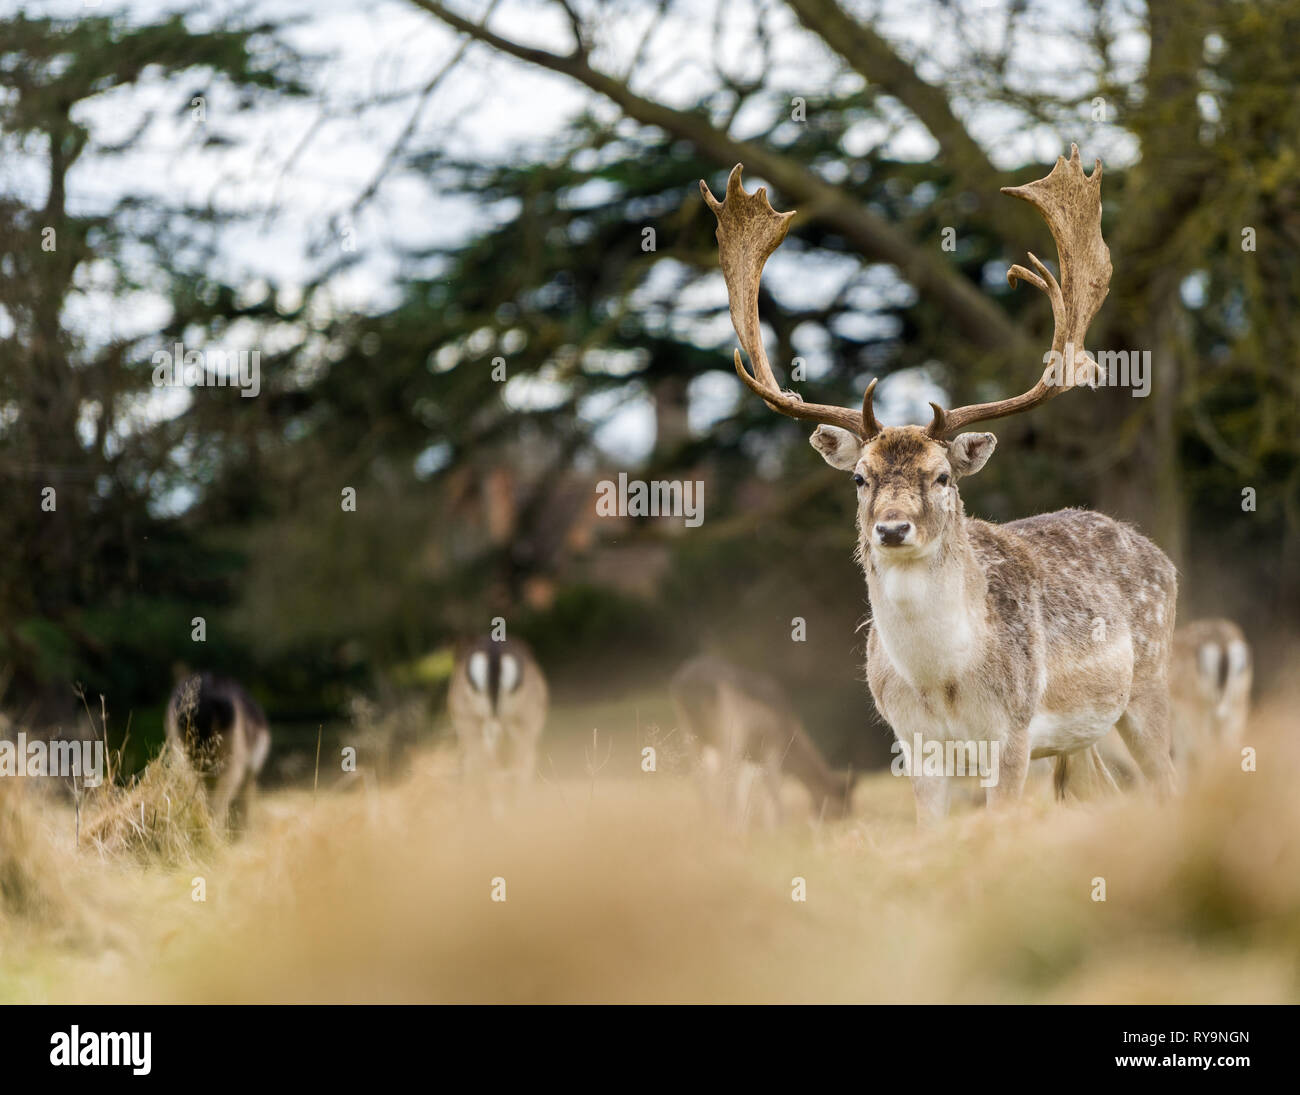 Stag deer looking at camera in Autumn taken from very low angle Stock Photo